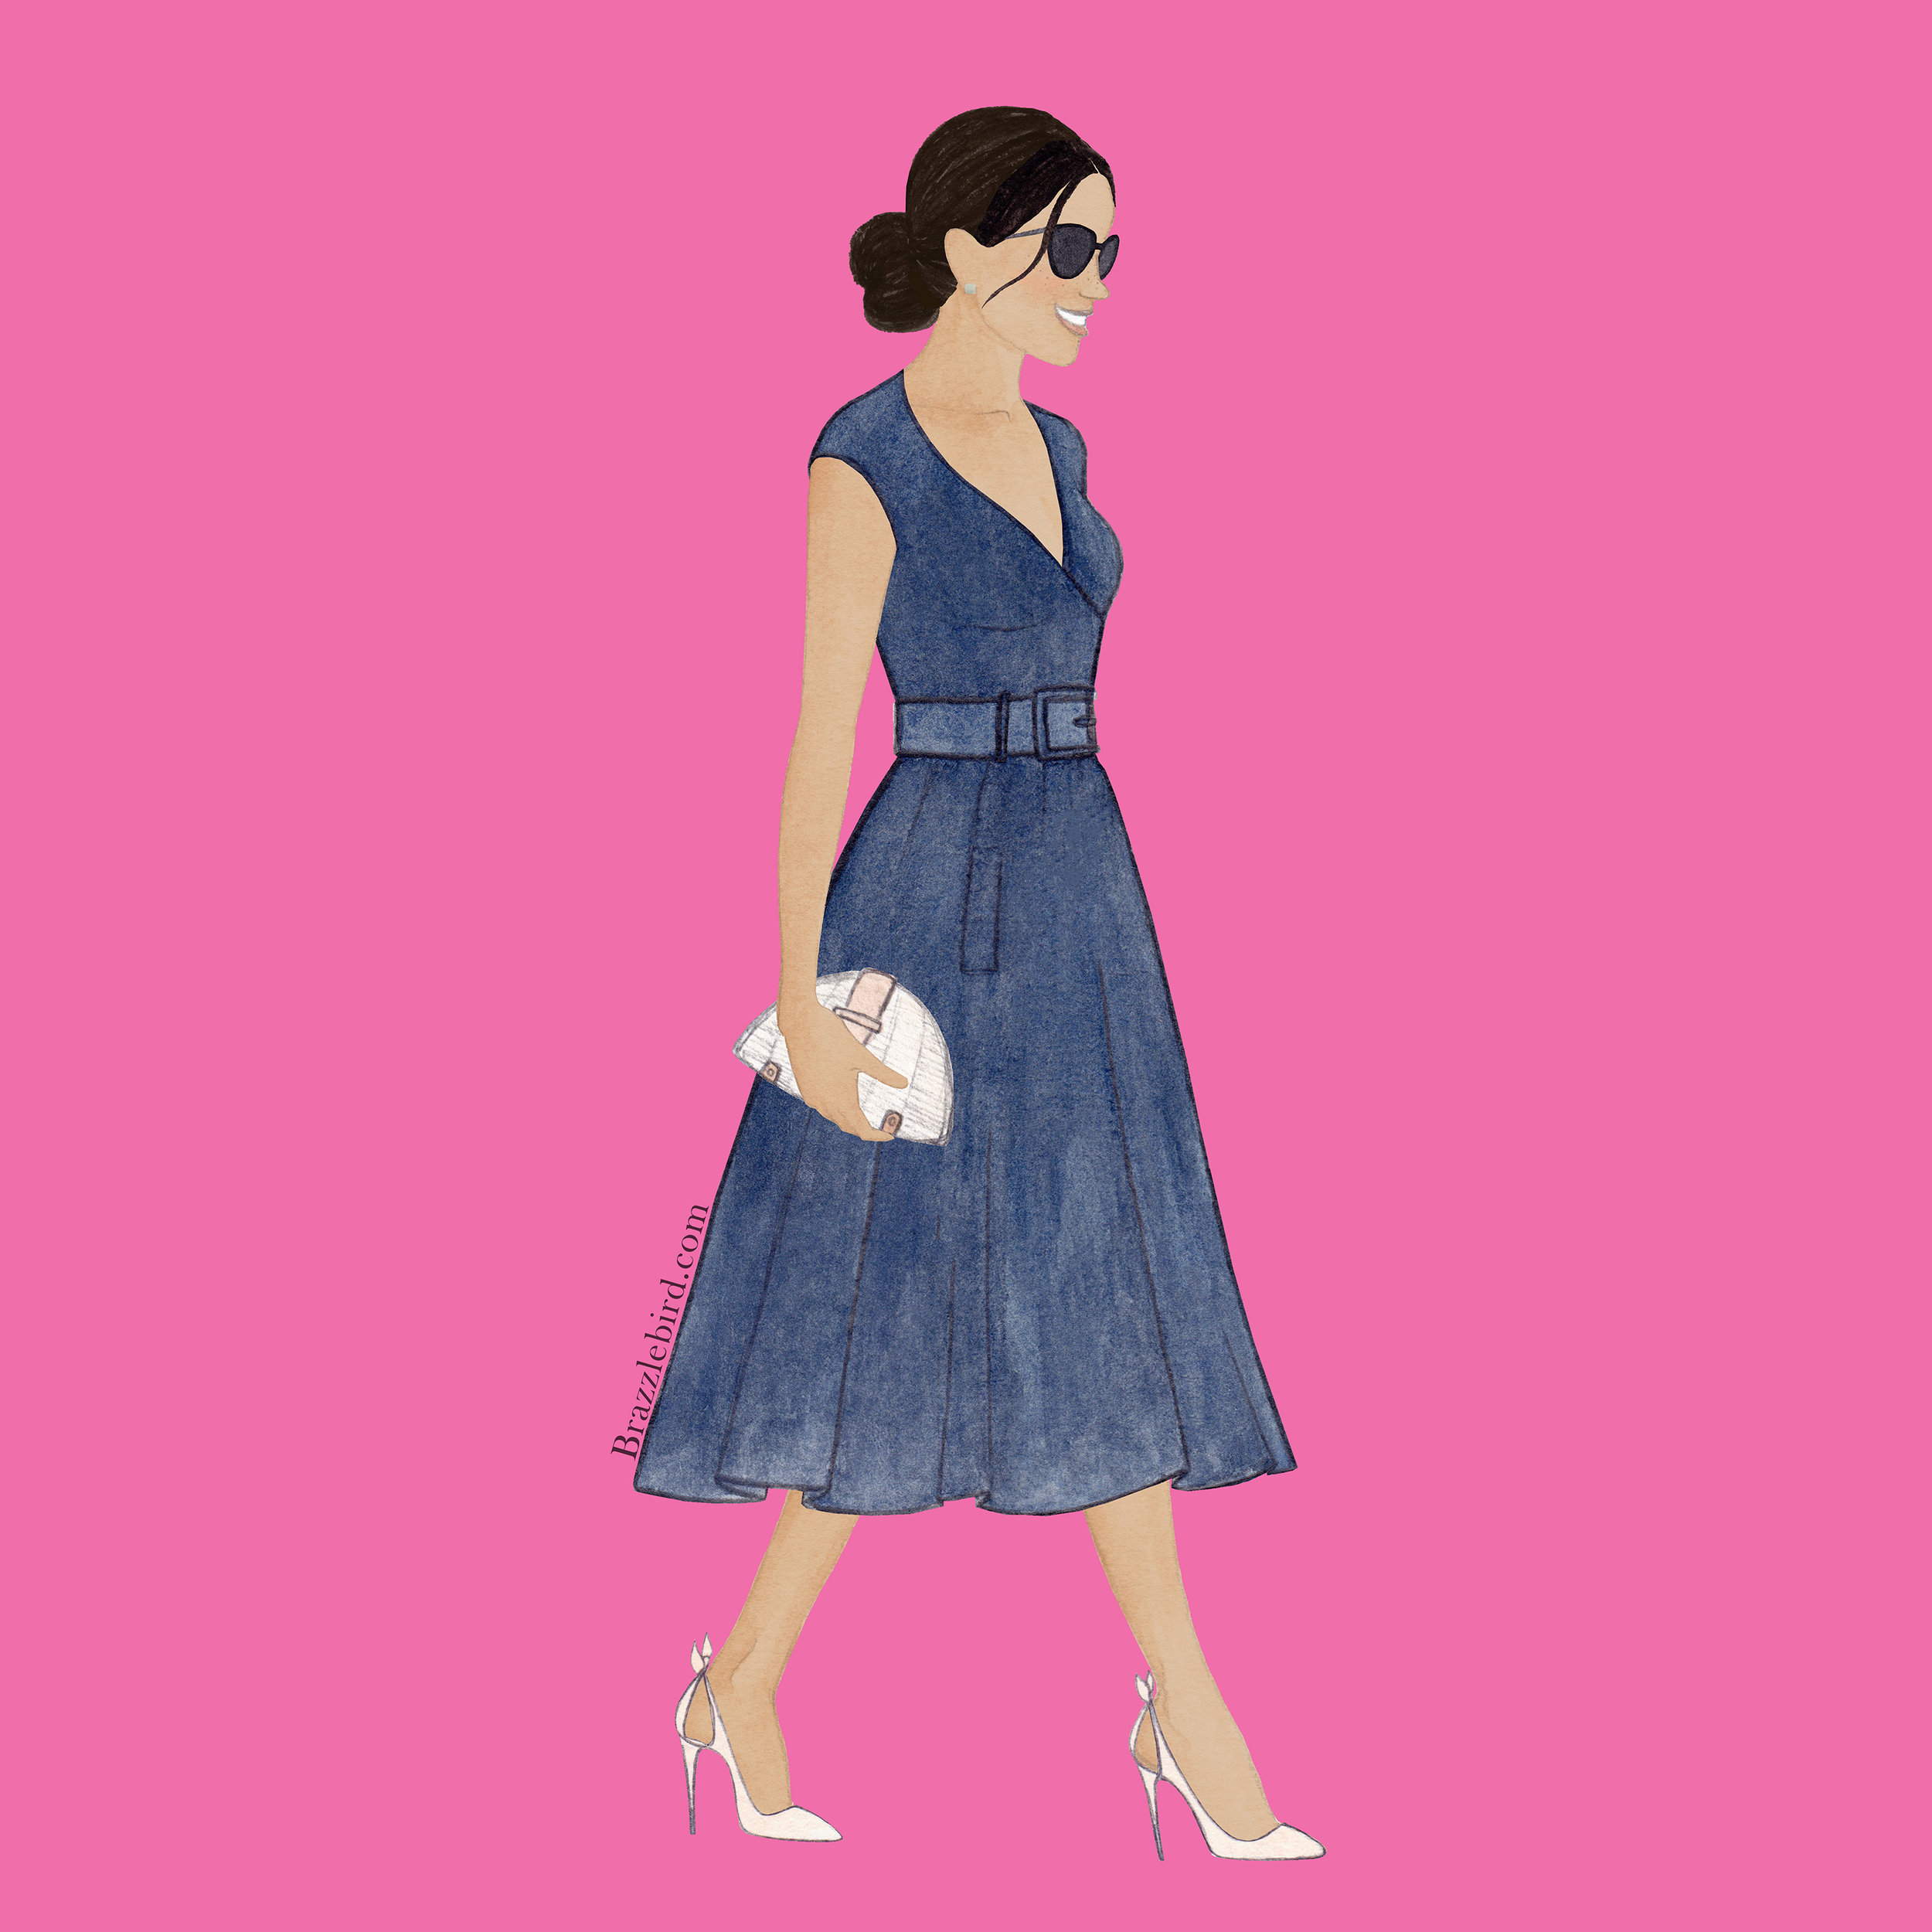 Brazzlebird Meghan Markle Sentebale Polo Fashion Illustration